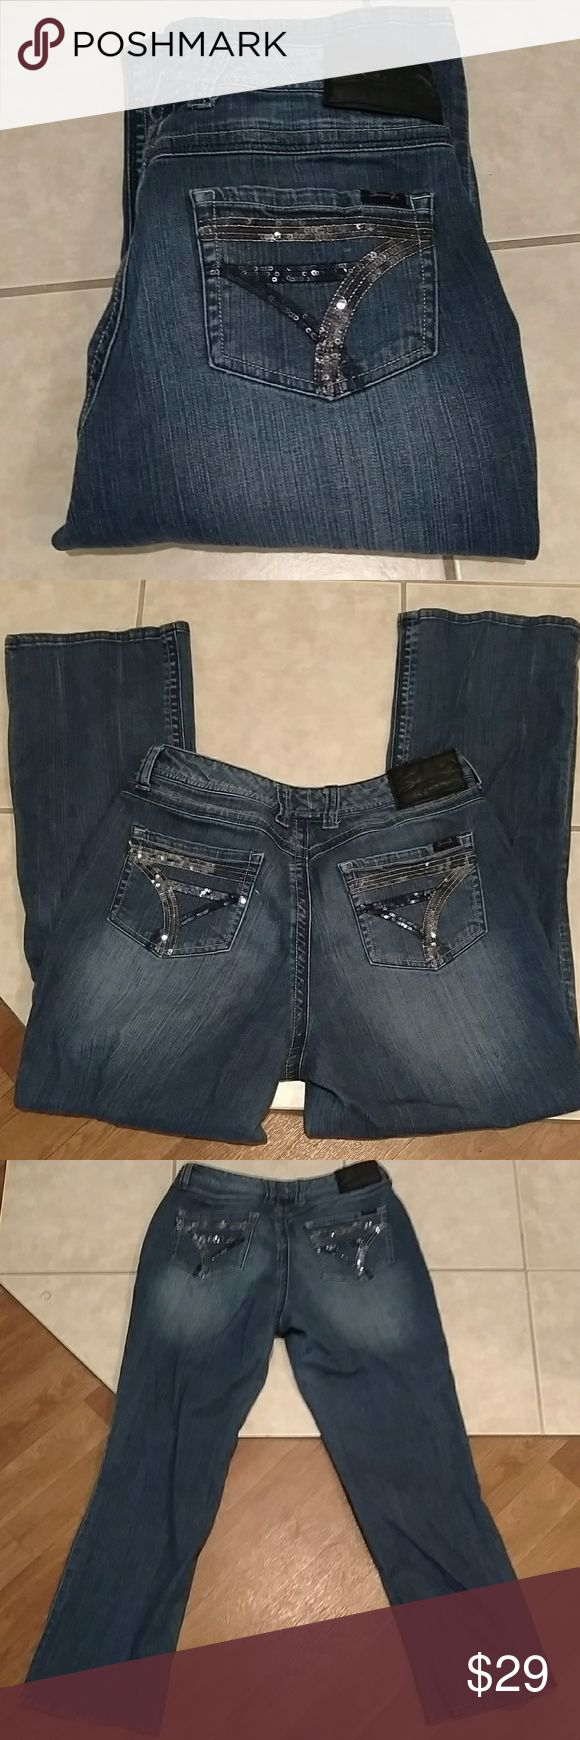 Seven7 jeans Great pair of seven7's jeans in good pre loved condition. Inseam is 31 inches with a rise of 9 inches. Waist flat measures 17.5 inches. 99% cotton 1% Spandex Seven7 Jeans Boot Cut